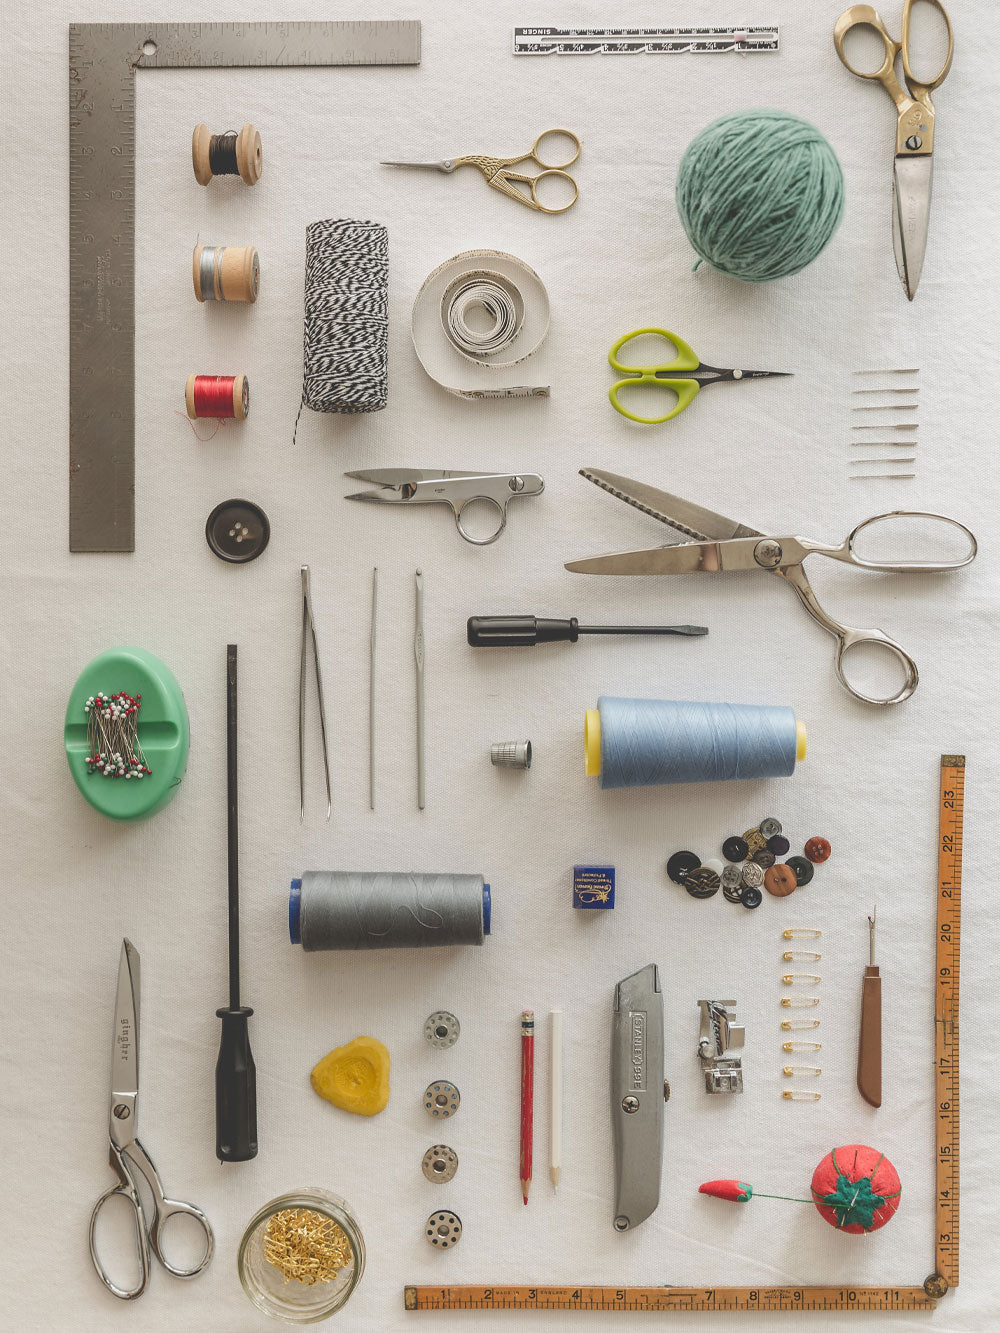 All of the supplies needed for any sewing project set up in perfect order on white linen. Needles, pins, thread, scissors and measuring tools,